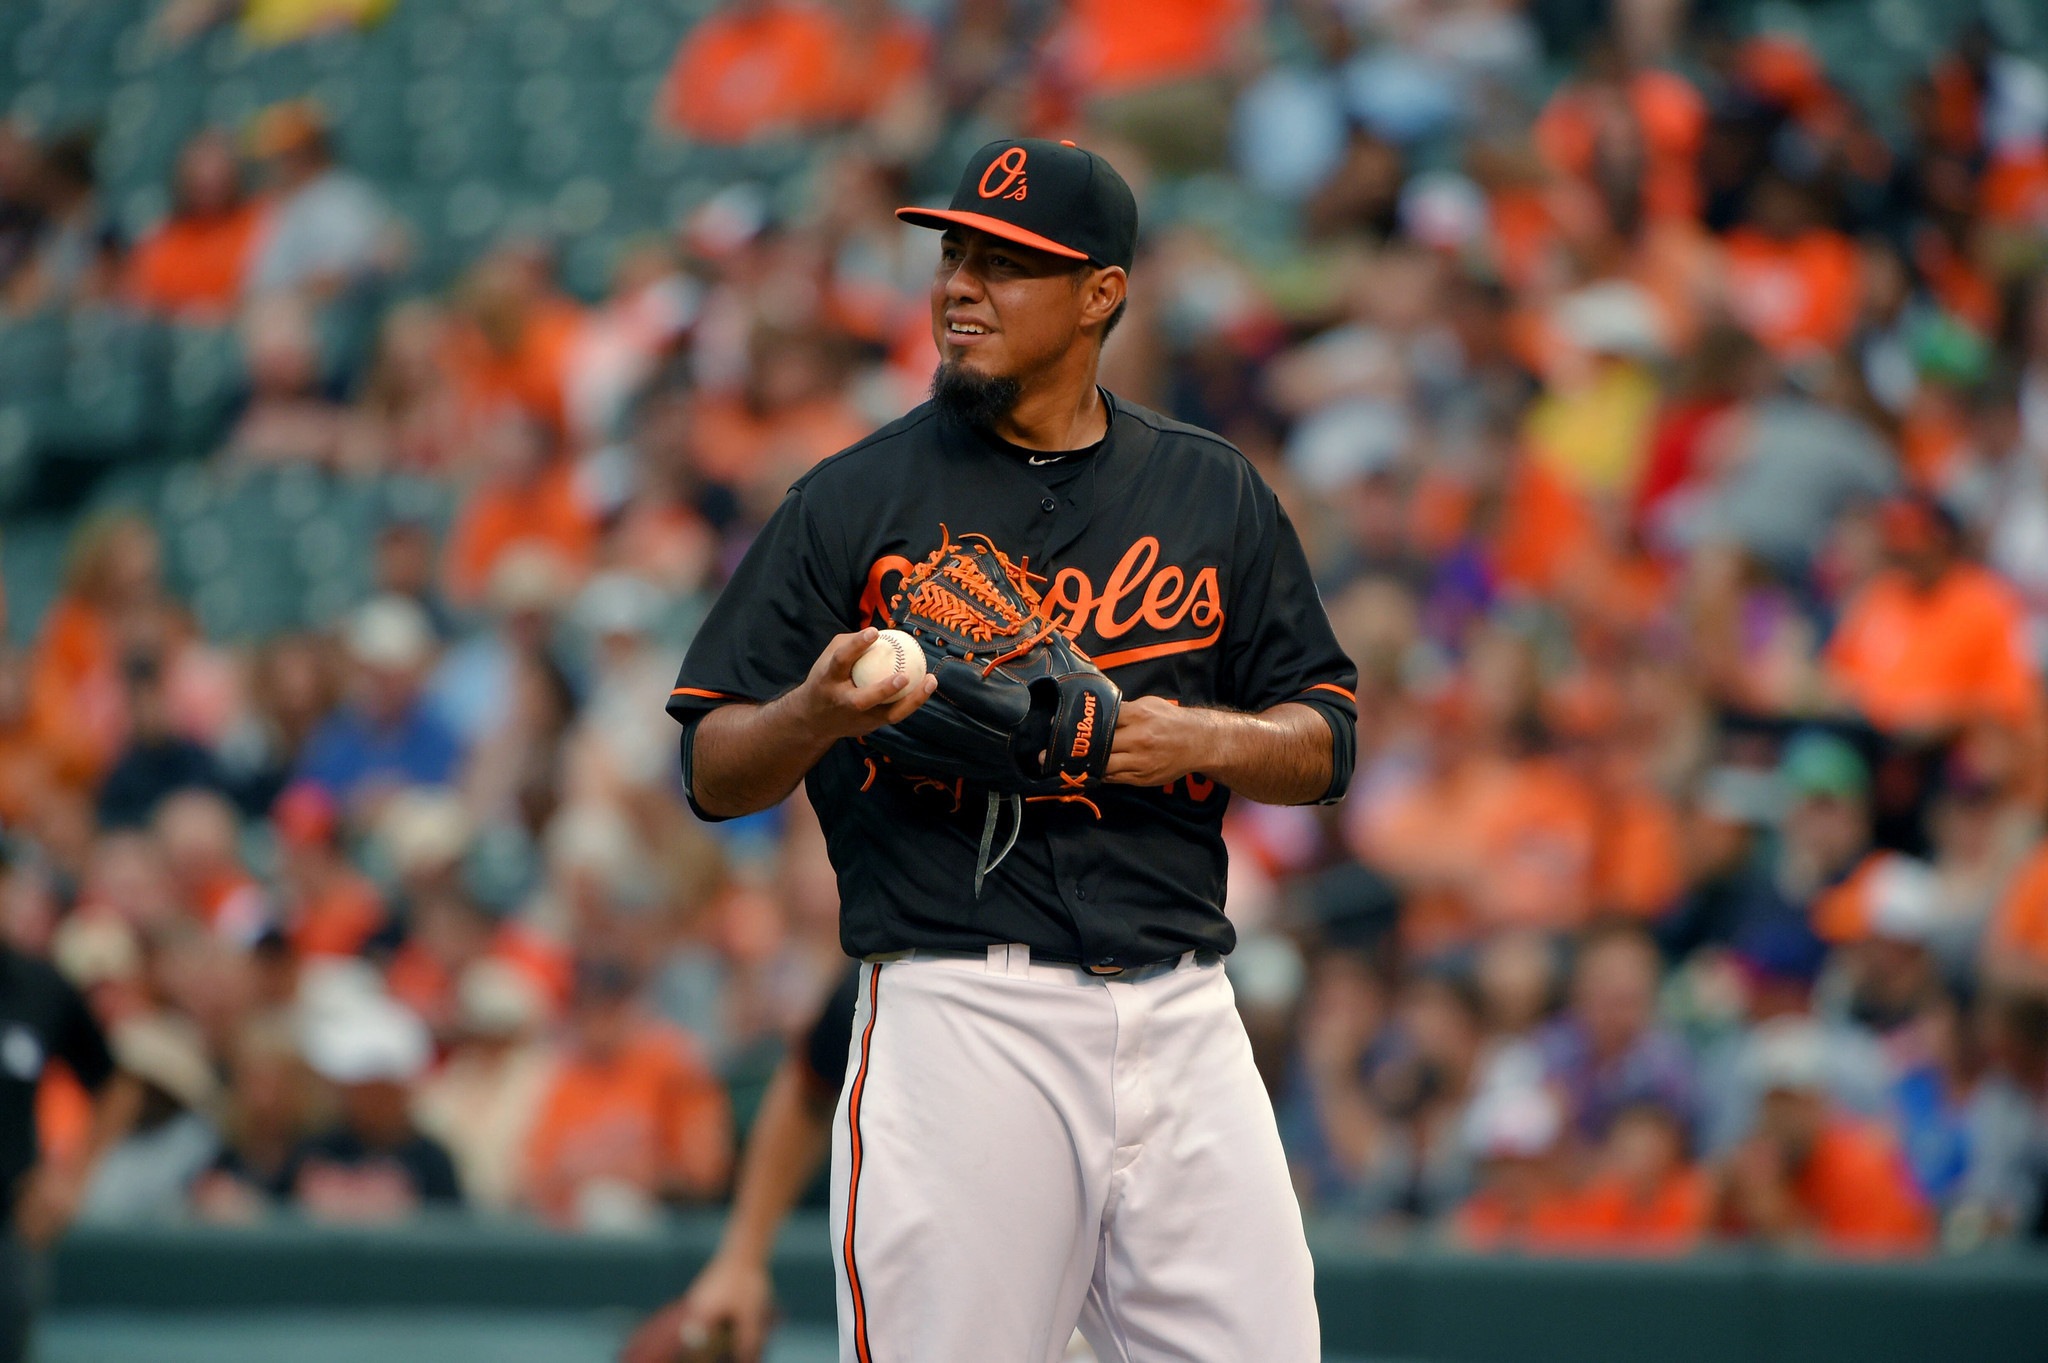 Bal-facing-early-exit-orioles-pitcher-yovani-gallardo-turns-fortunes-around-after-rocky-first-inning-20160624